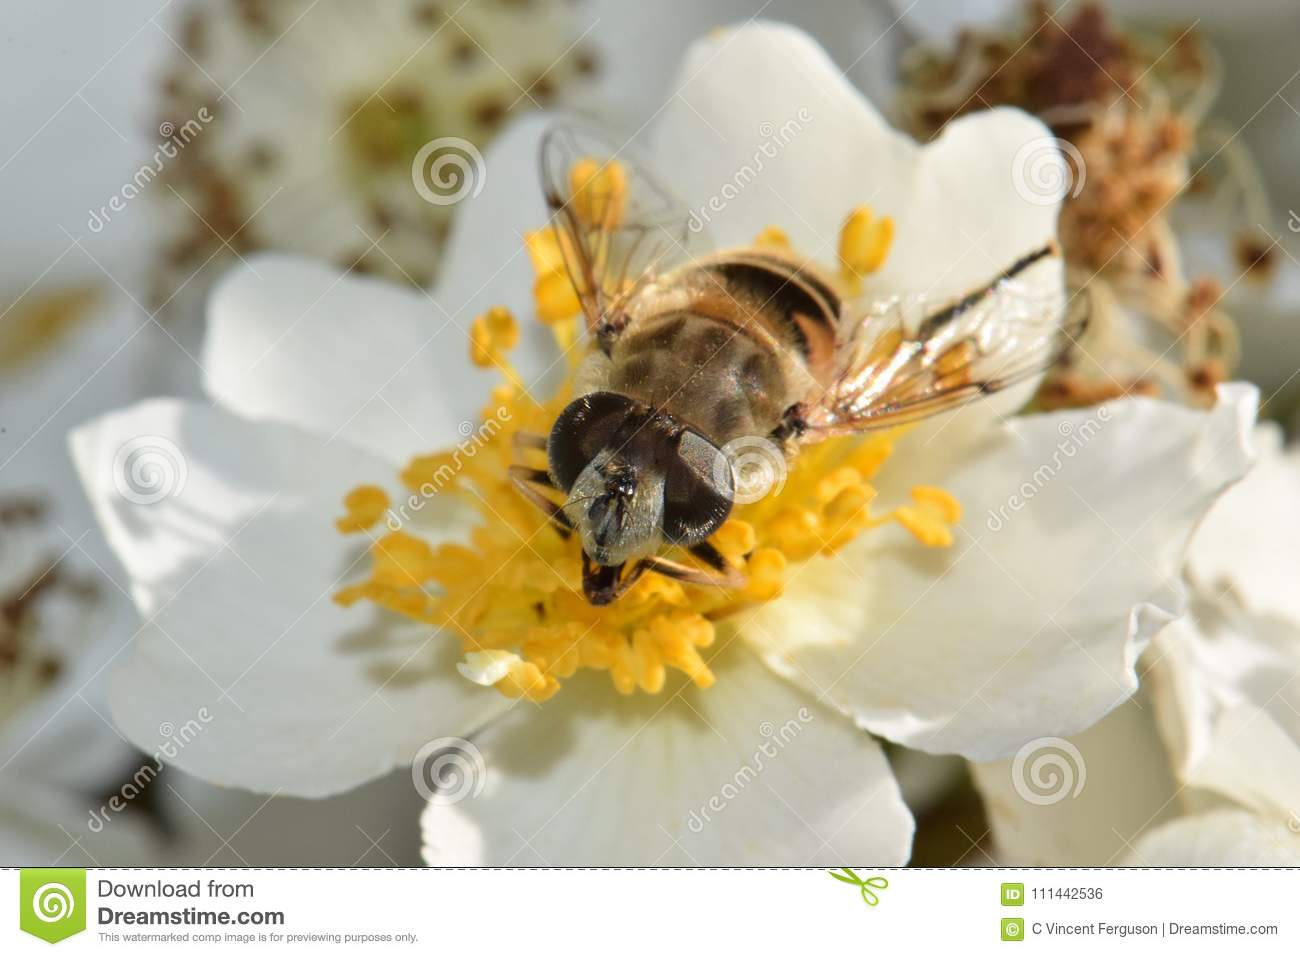 Bee Closeup in White Flower